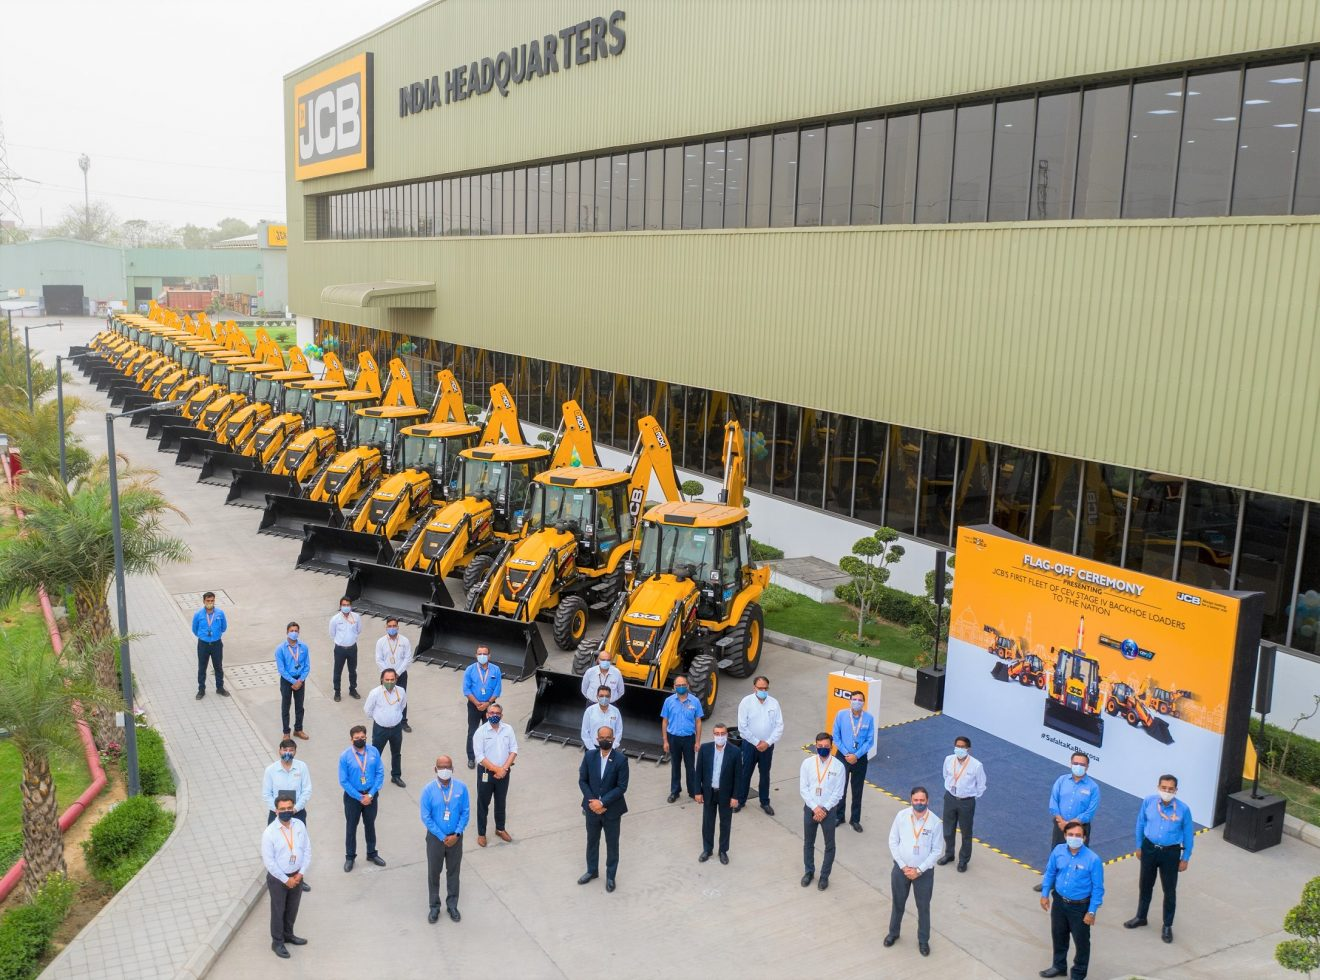 JCB India launches its range of CEV Stage IV Backhoe Loaders